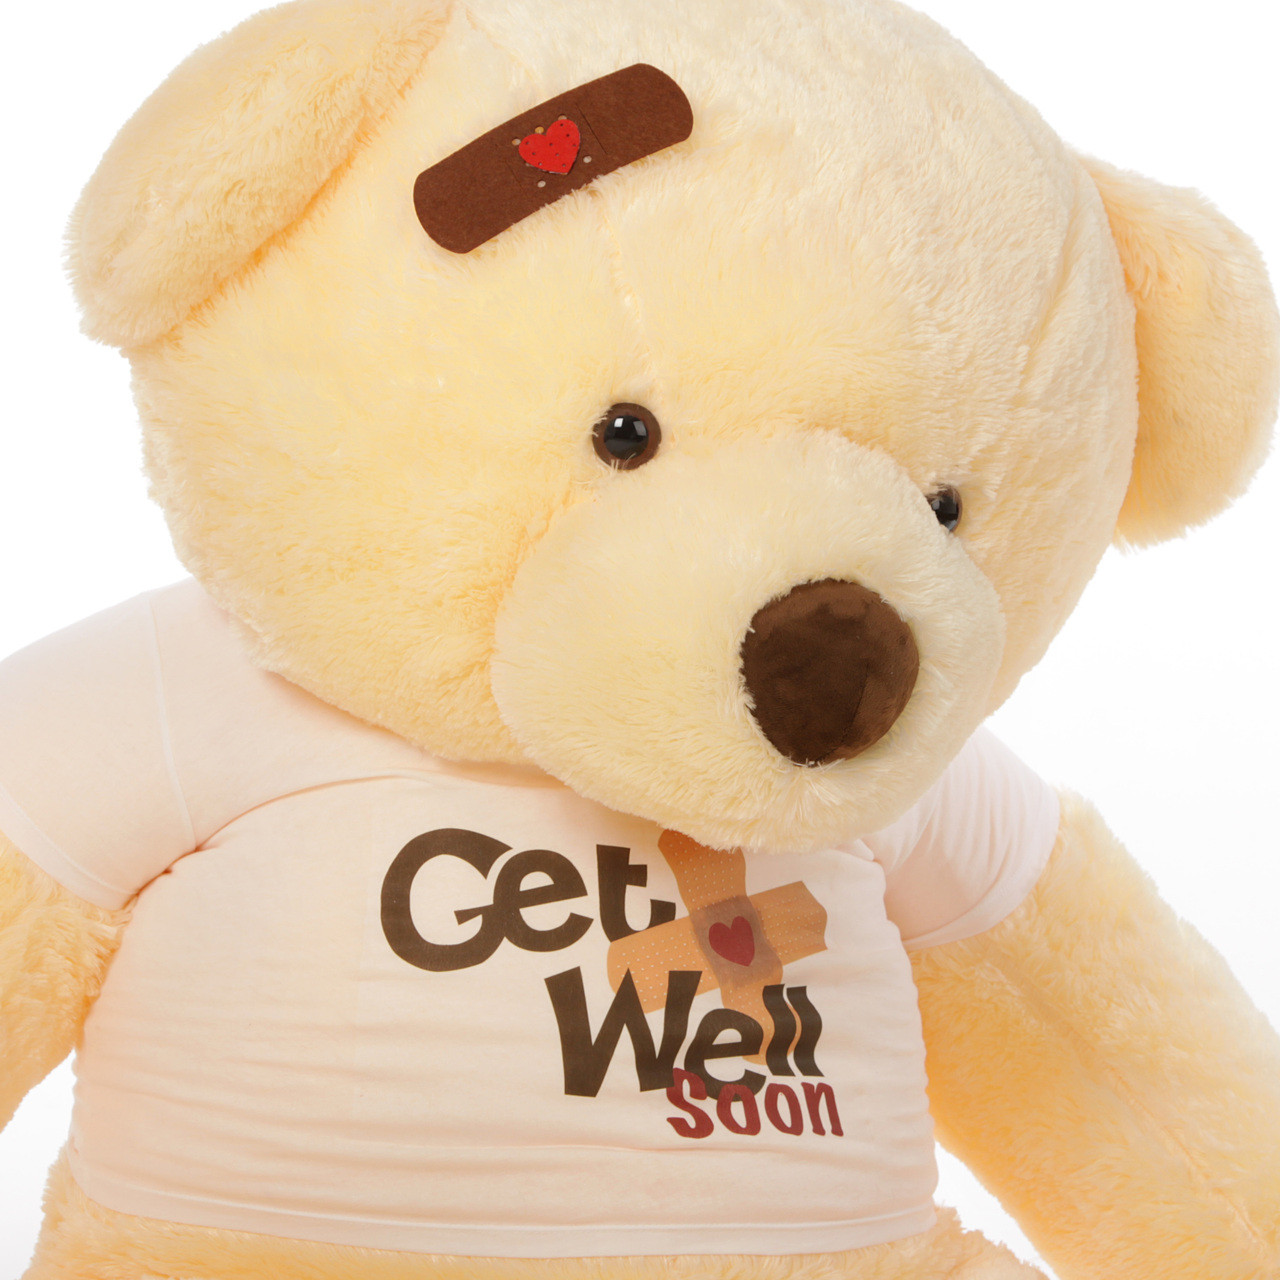 5ft Get Well Soon Vanilla teddy bear , Smiley Chubs (Close Up)